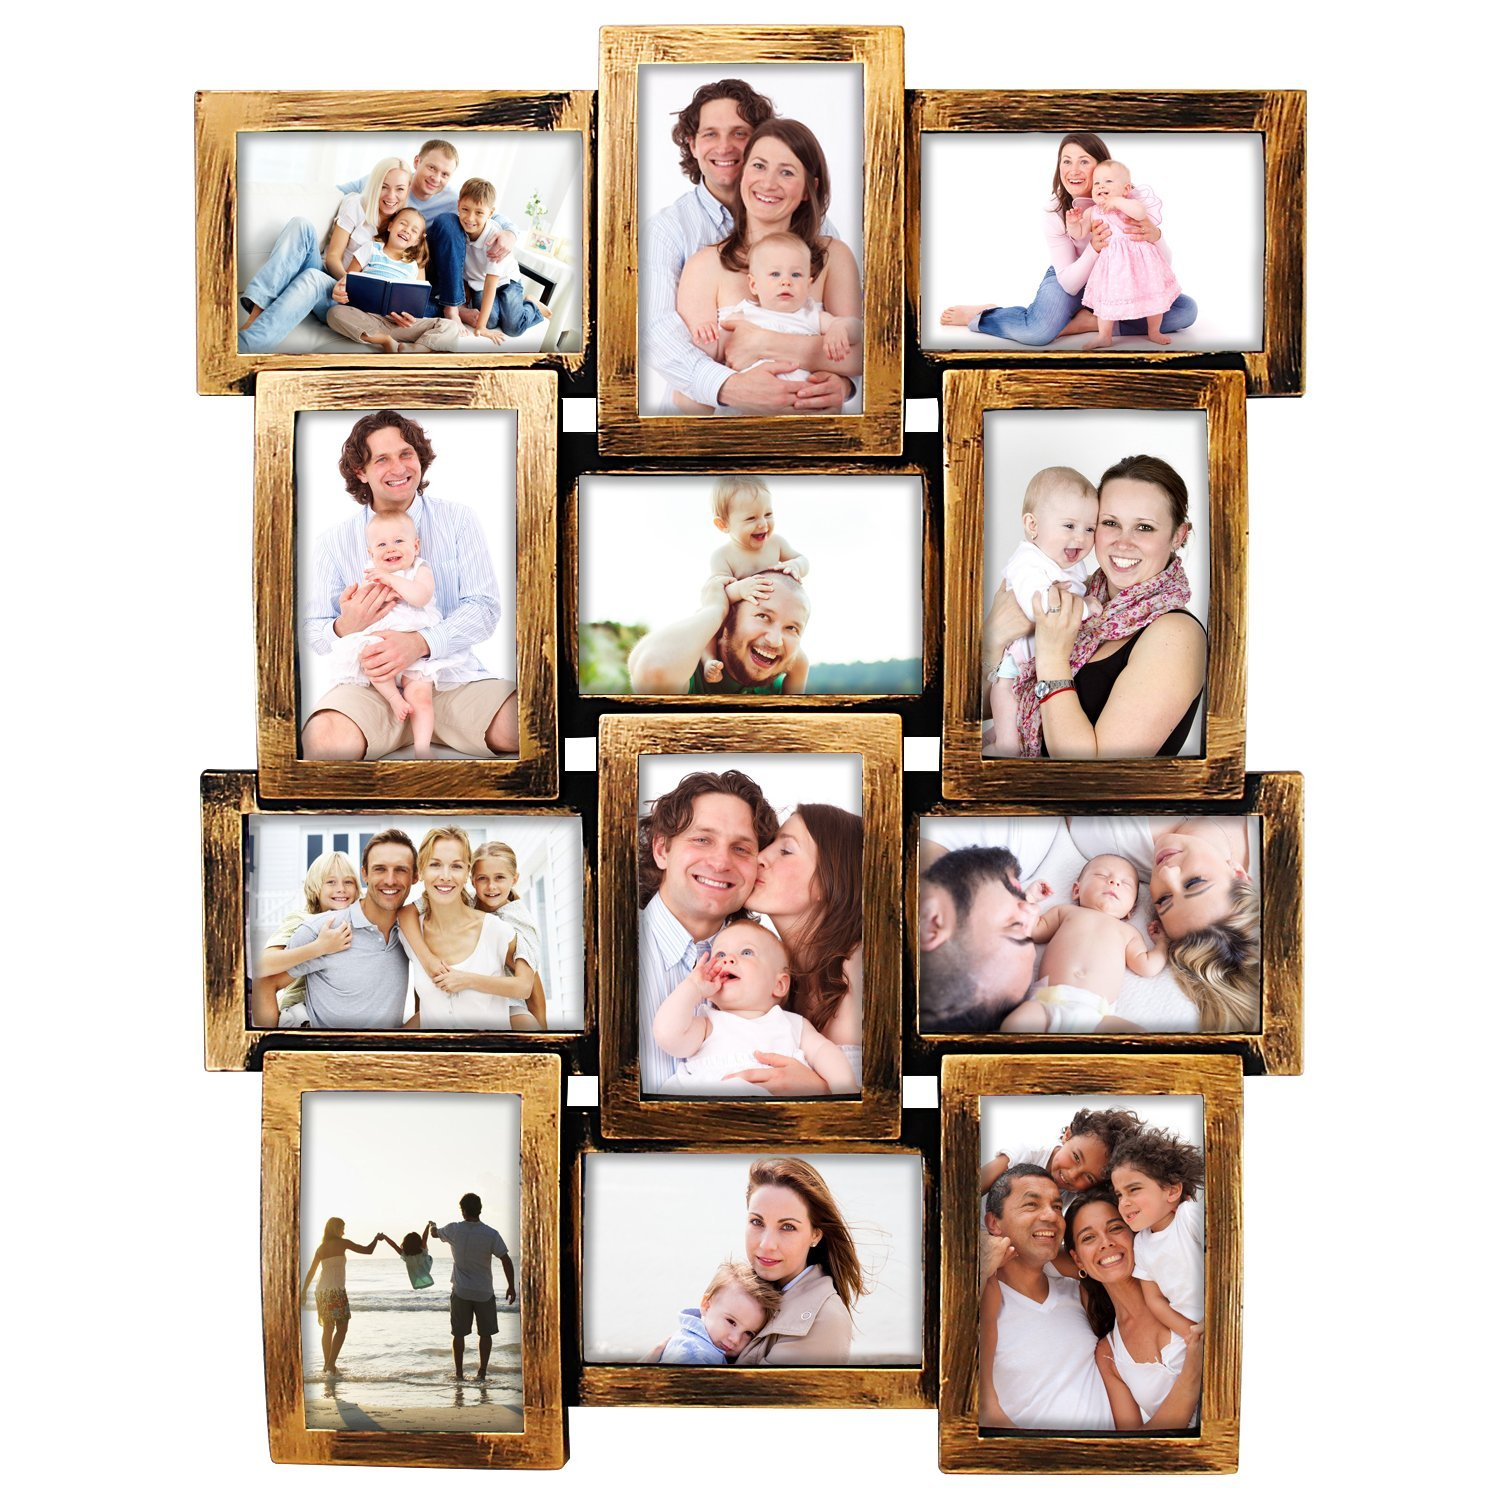 DL furniture - Photo Frame 23X18 Retro Bronze Finish PVC Picture Frame Selfie Gallery Collage Wall Hanging For 6x4 Photo - 12 Photo Sockets - Classic Loyalty Style - Wall Mounting Design